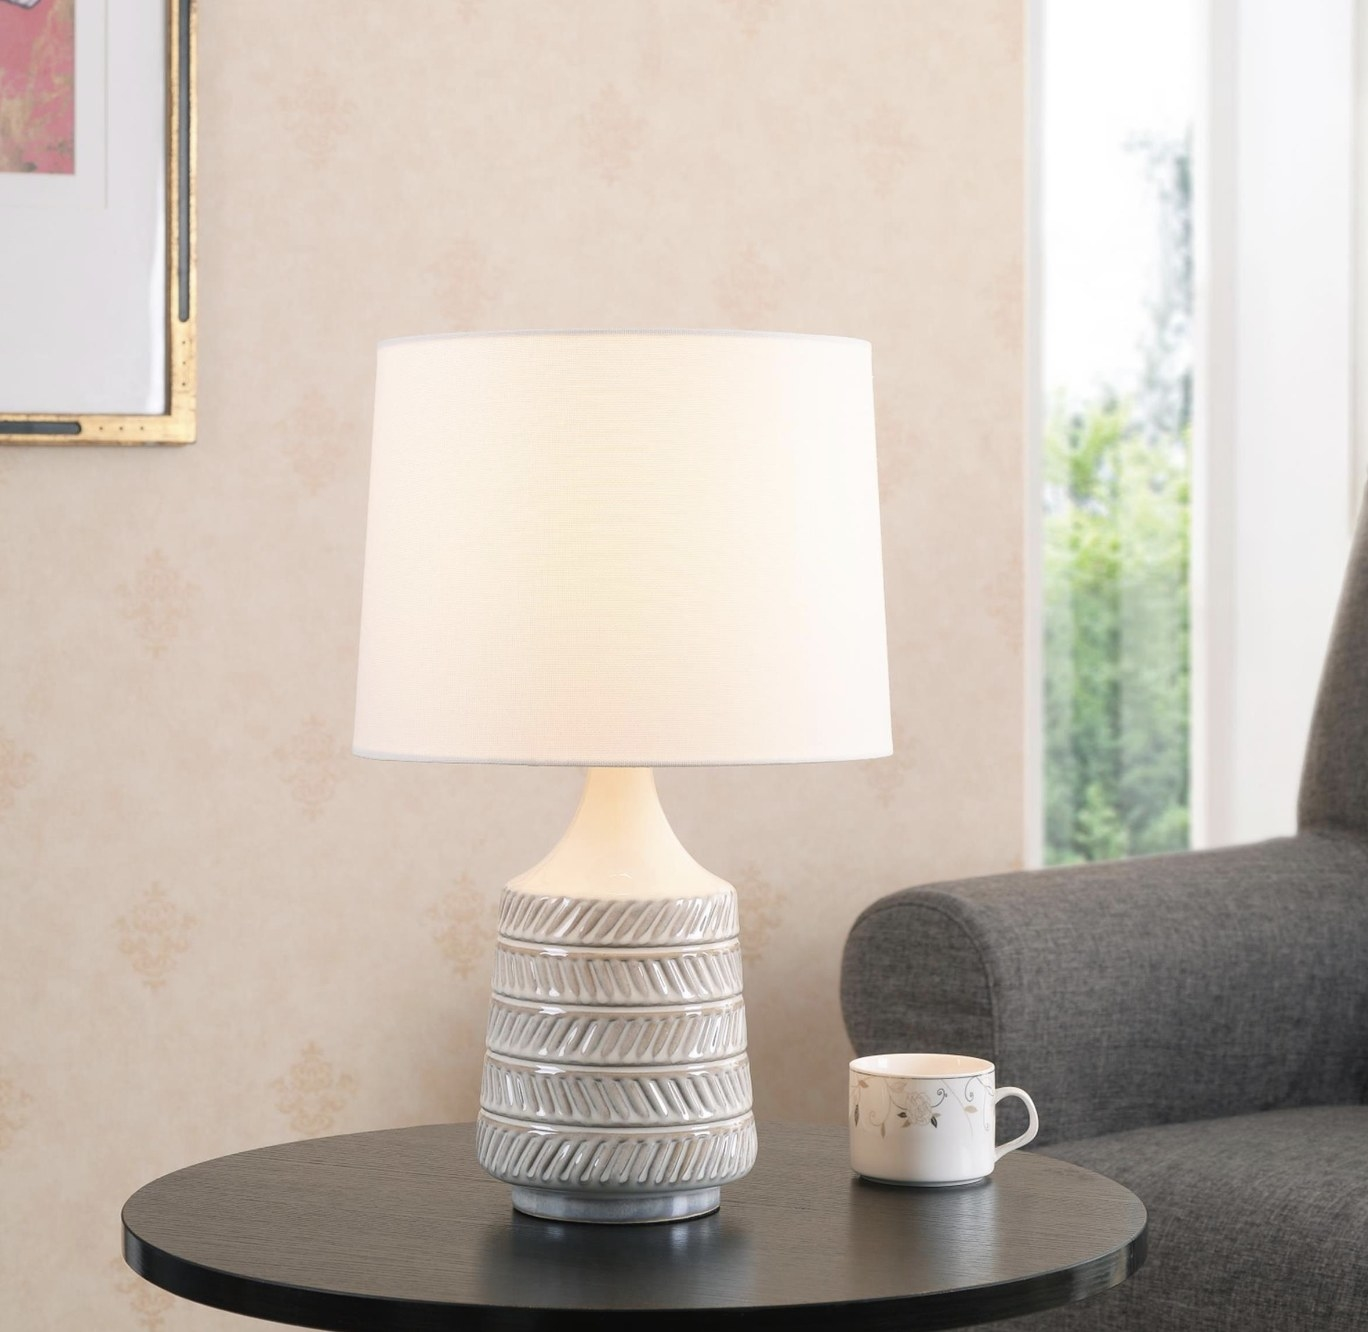 A white textured table lamp